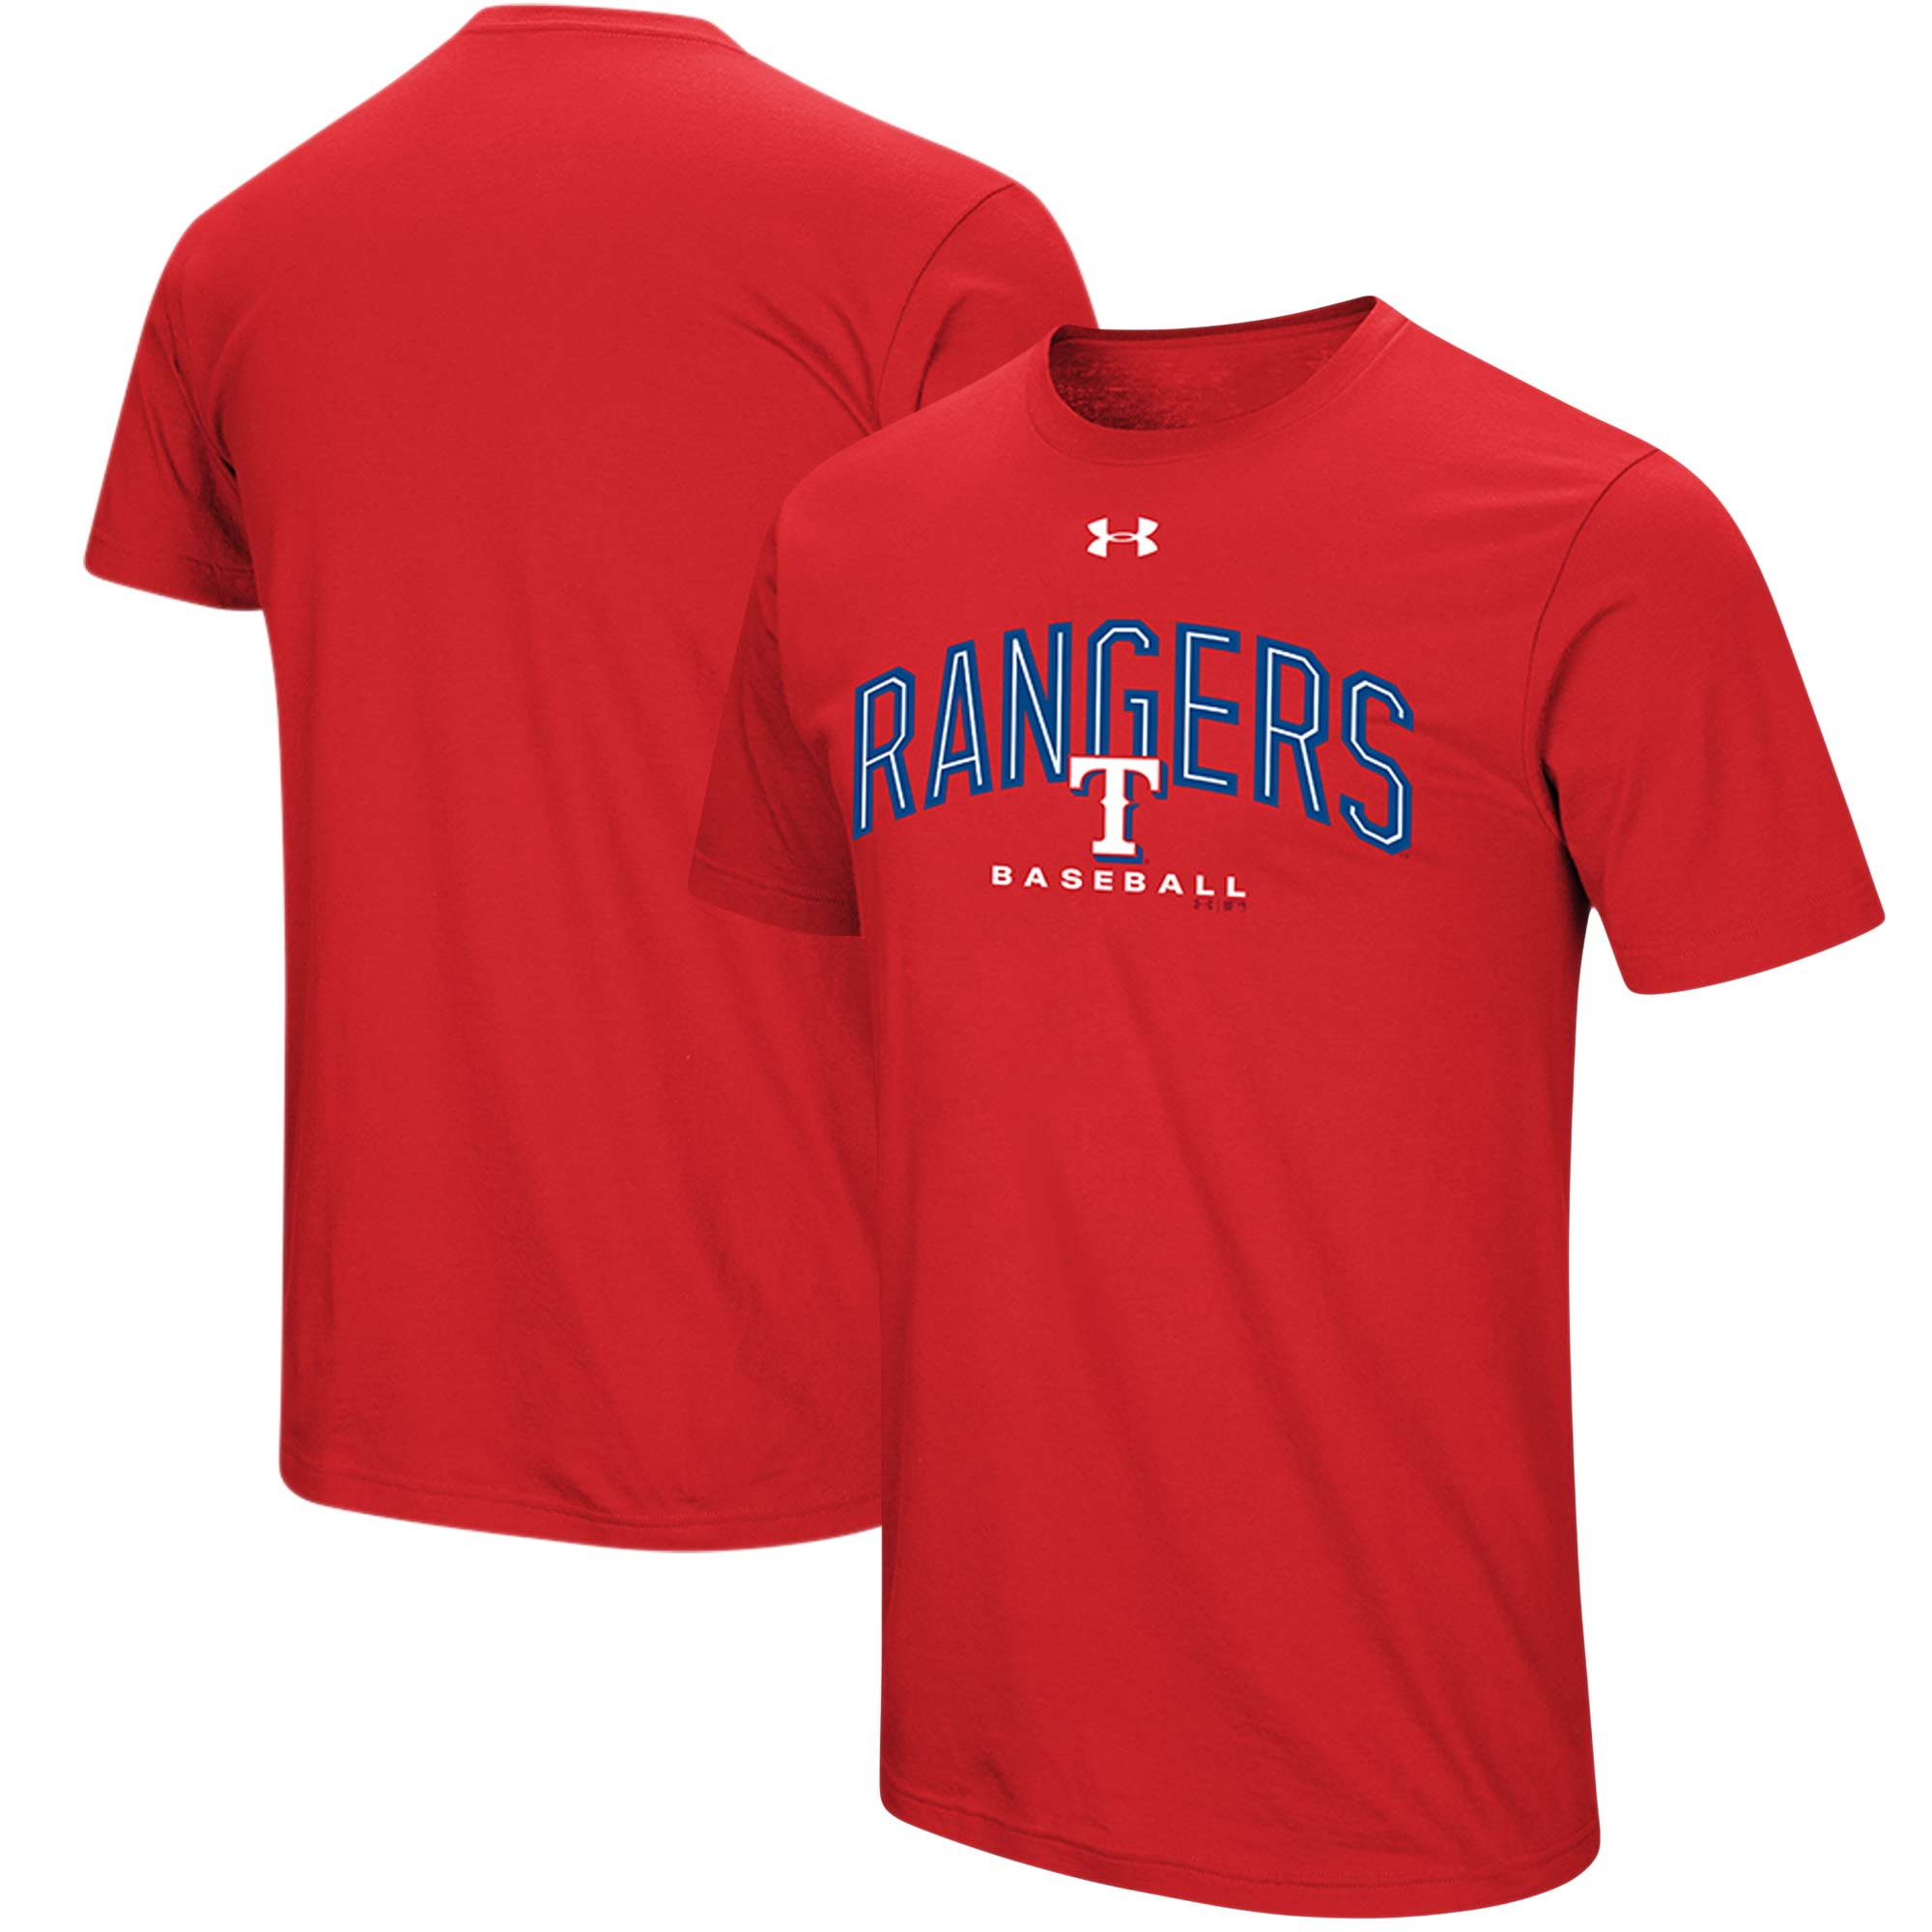 Texas Rangers Under Armour Performance Arch T-Shirt - Red